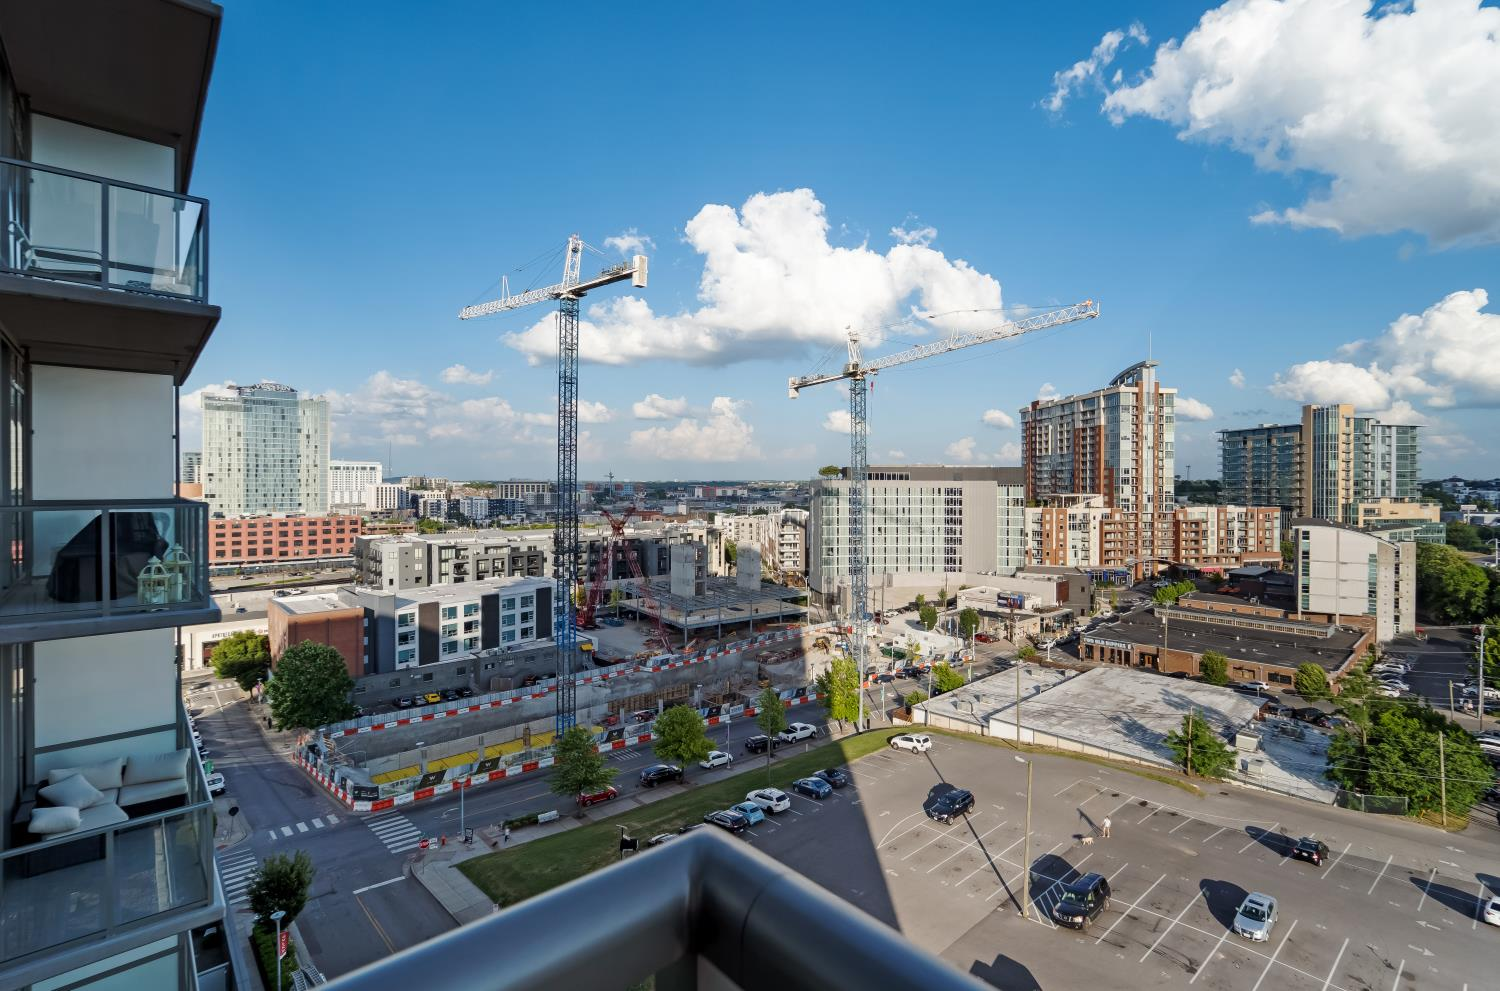 1212 Laurel St. #911, Nashville - Midtown in Davidson County County, TN 37203 Home for Sale